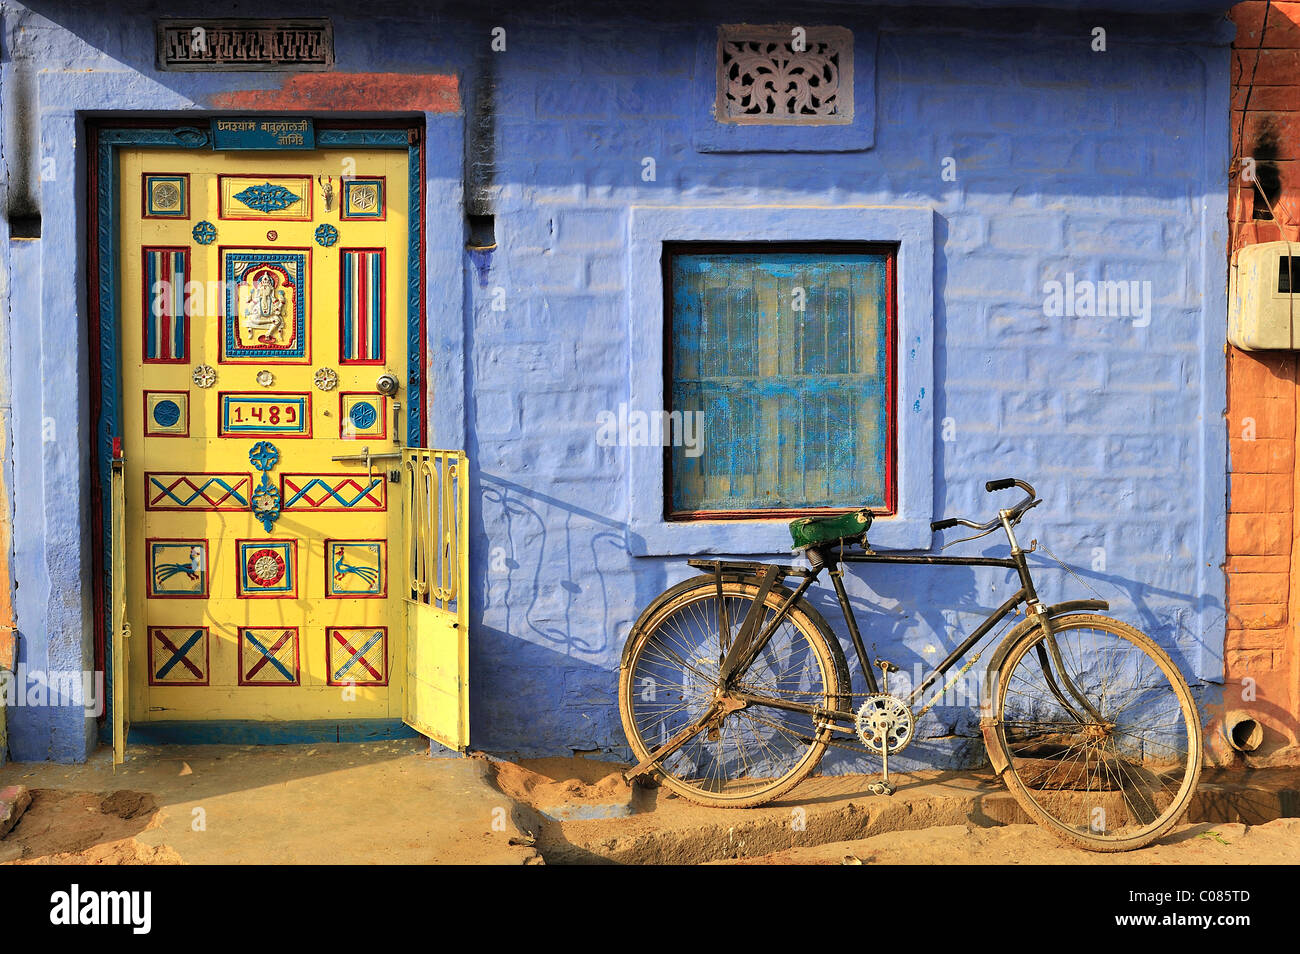 Front Door Decorated With Ornaments And A Bicycle In Front Of A Blue Wall  In An Indian Village, Thar Desert, Rajasthan, India